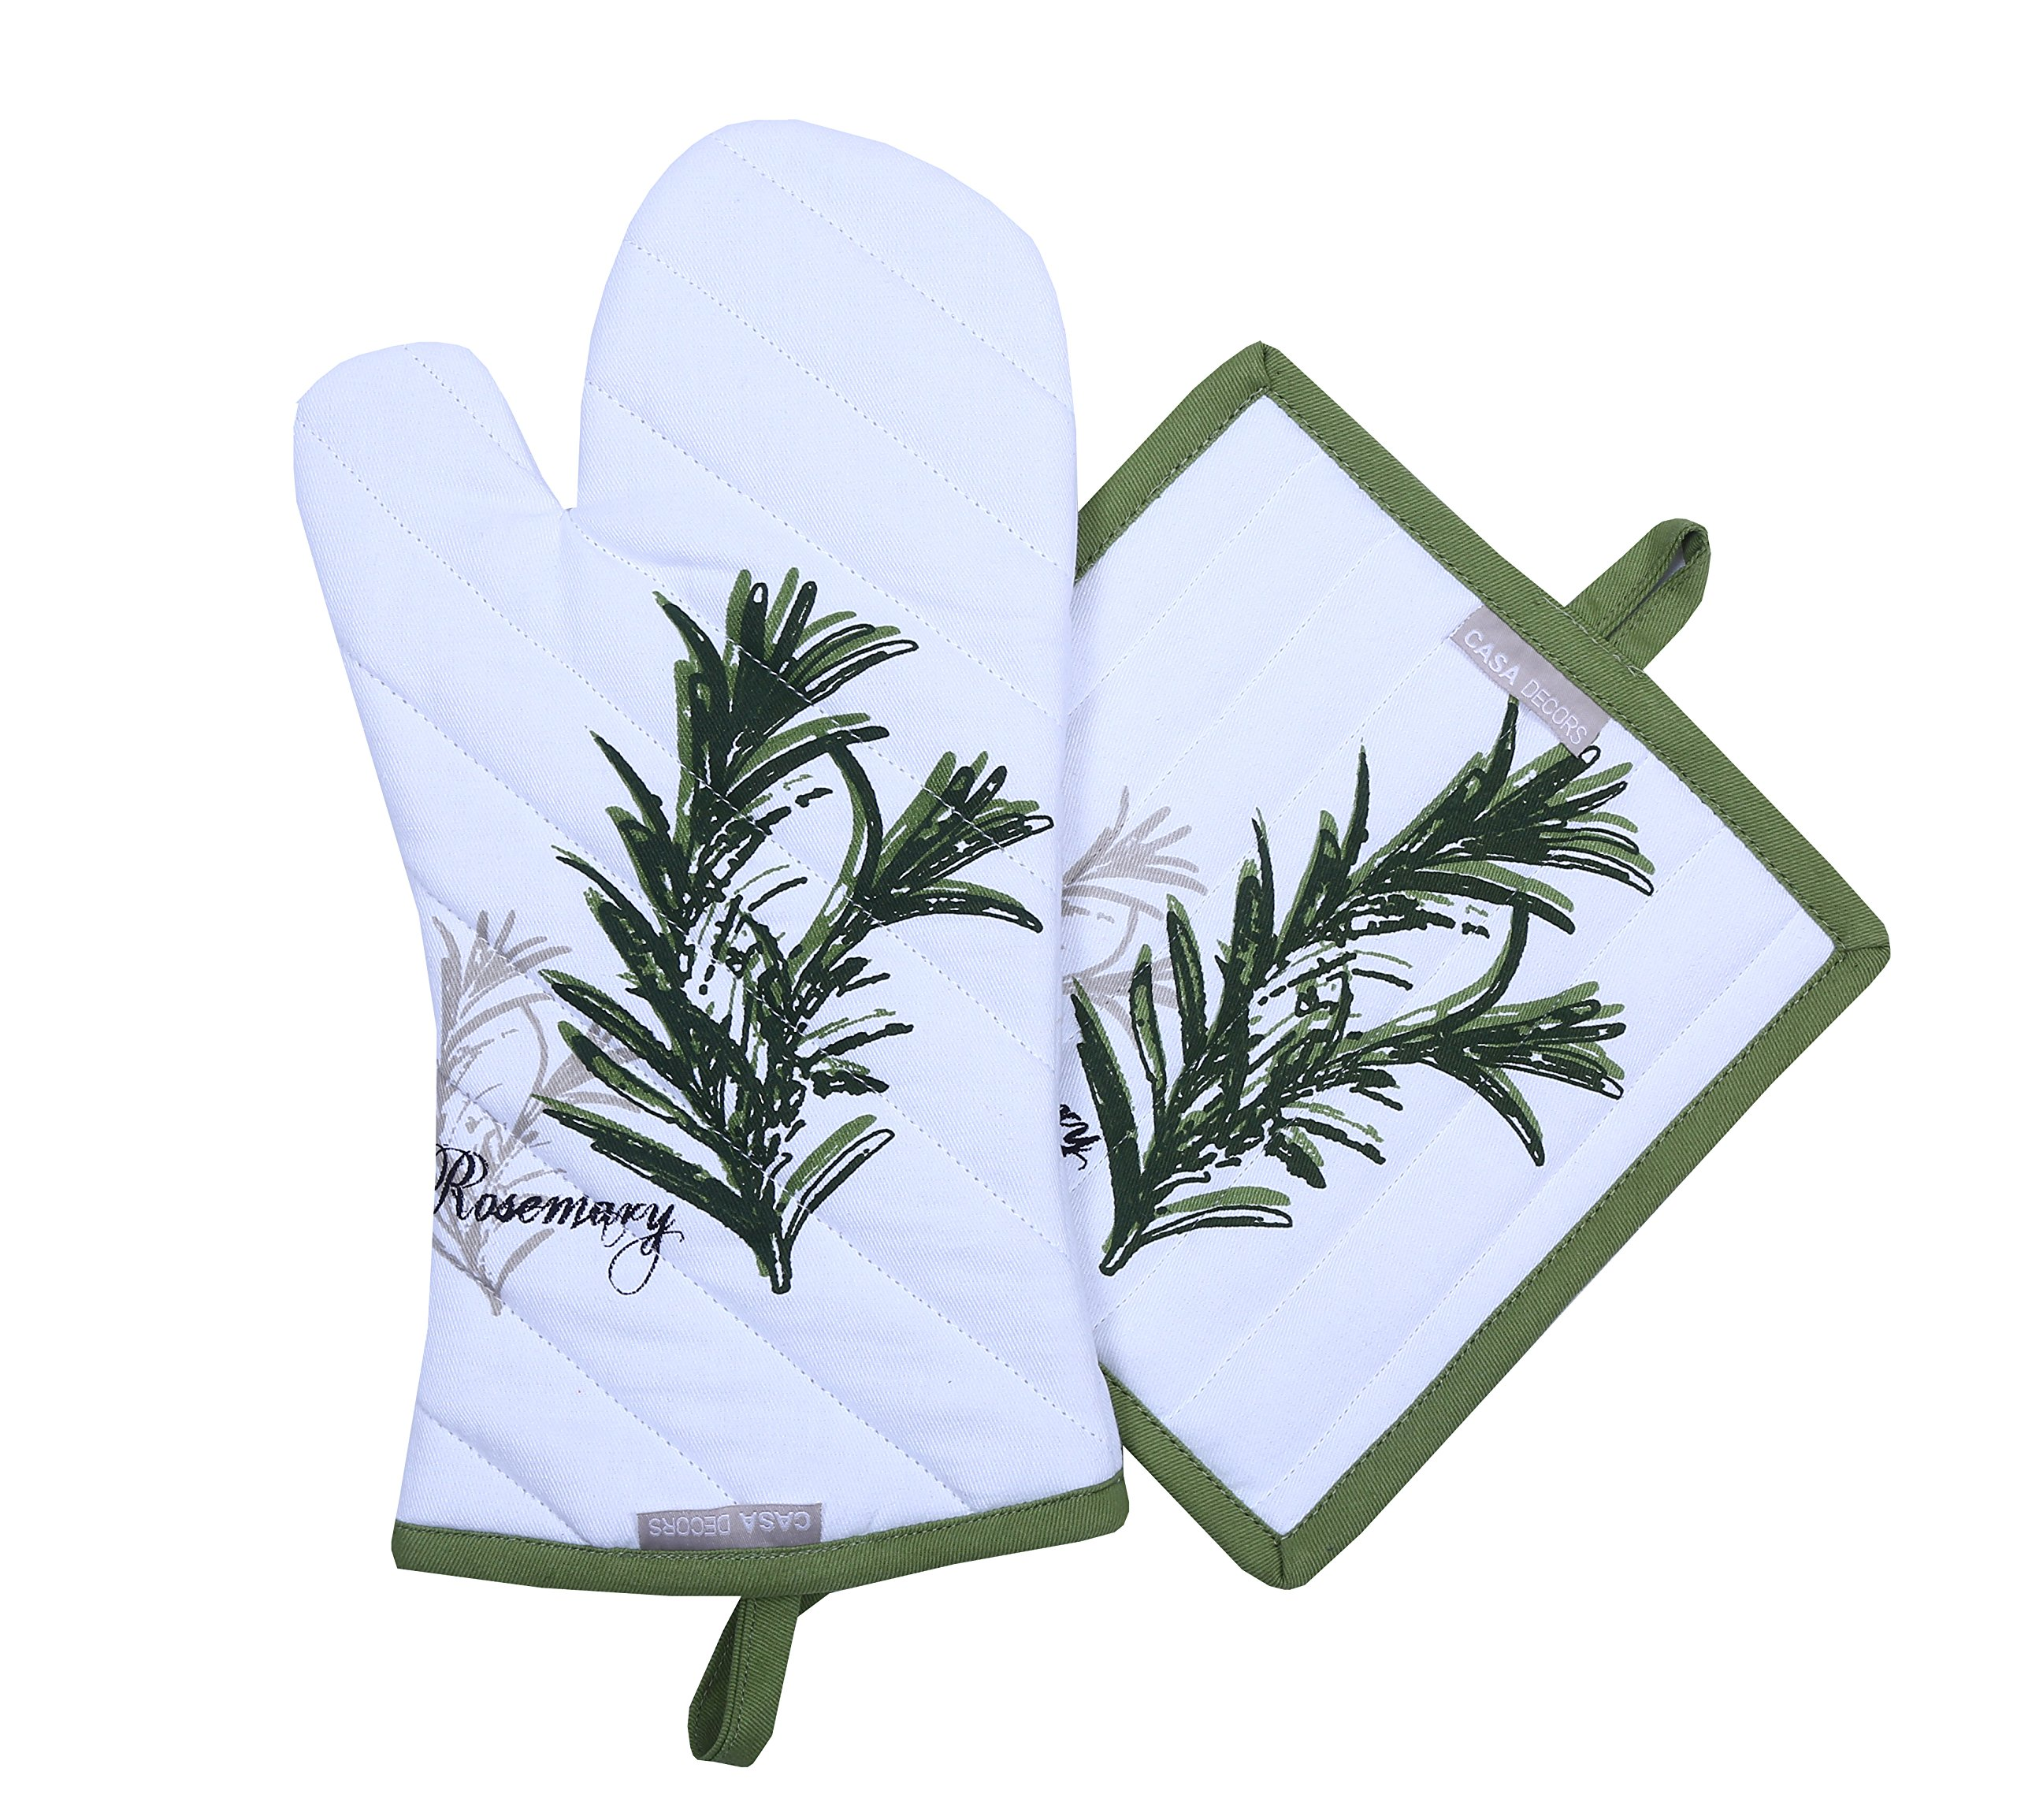 Pot Holders and Oven Mitts, Unique Herb Garden Design, Heat Resistant, Made of 100% Cotton, Eco-Friendly & Safe, Set of 1 Oven Mitt and 1 Pot Holder, Pot Holders and Oven Mitts Sets By CASA DECORS